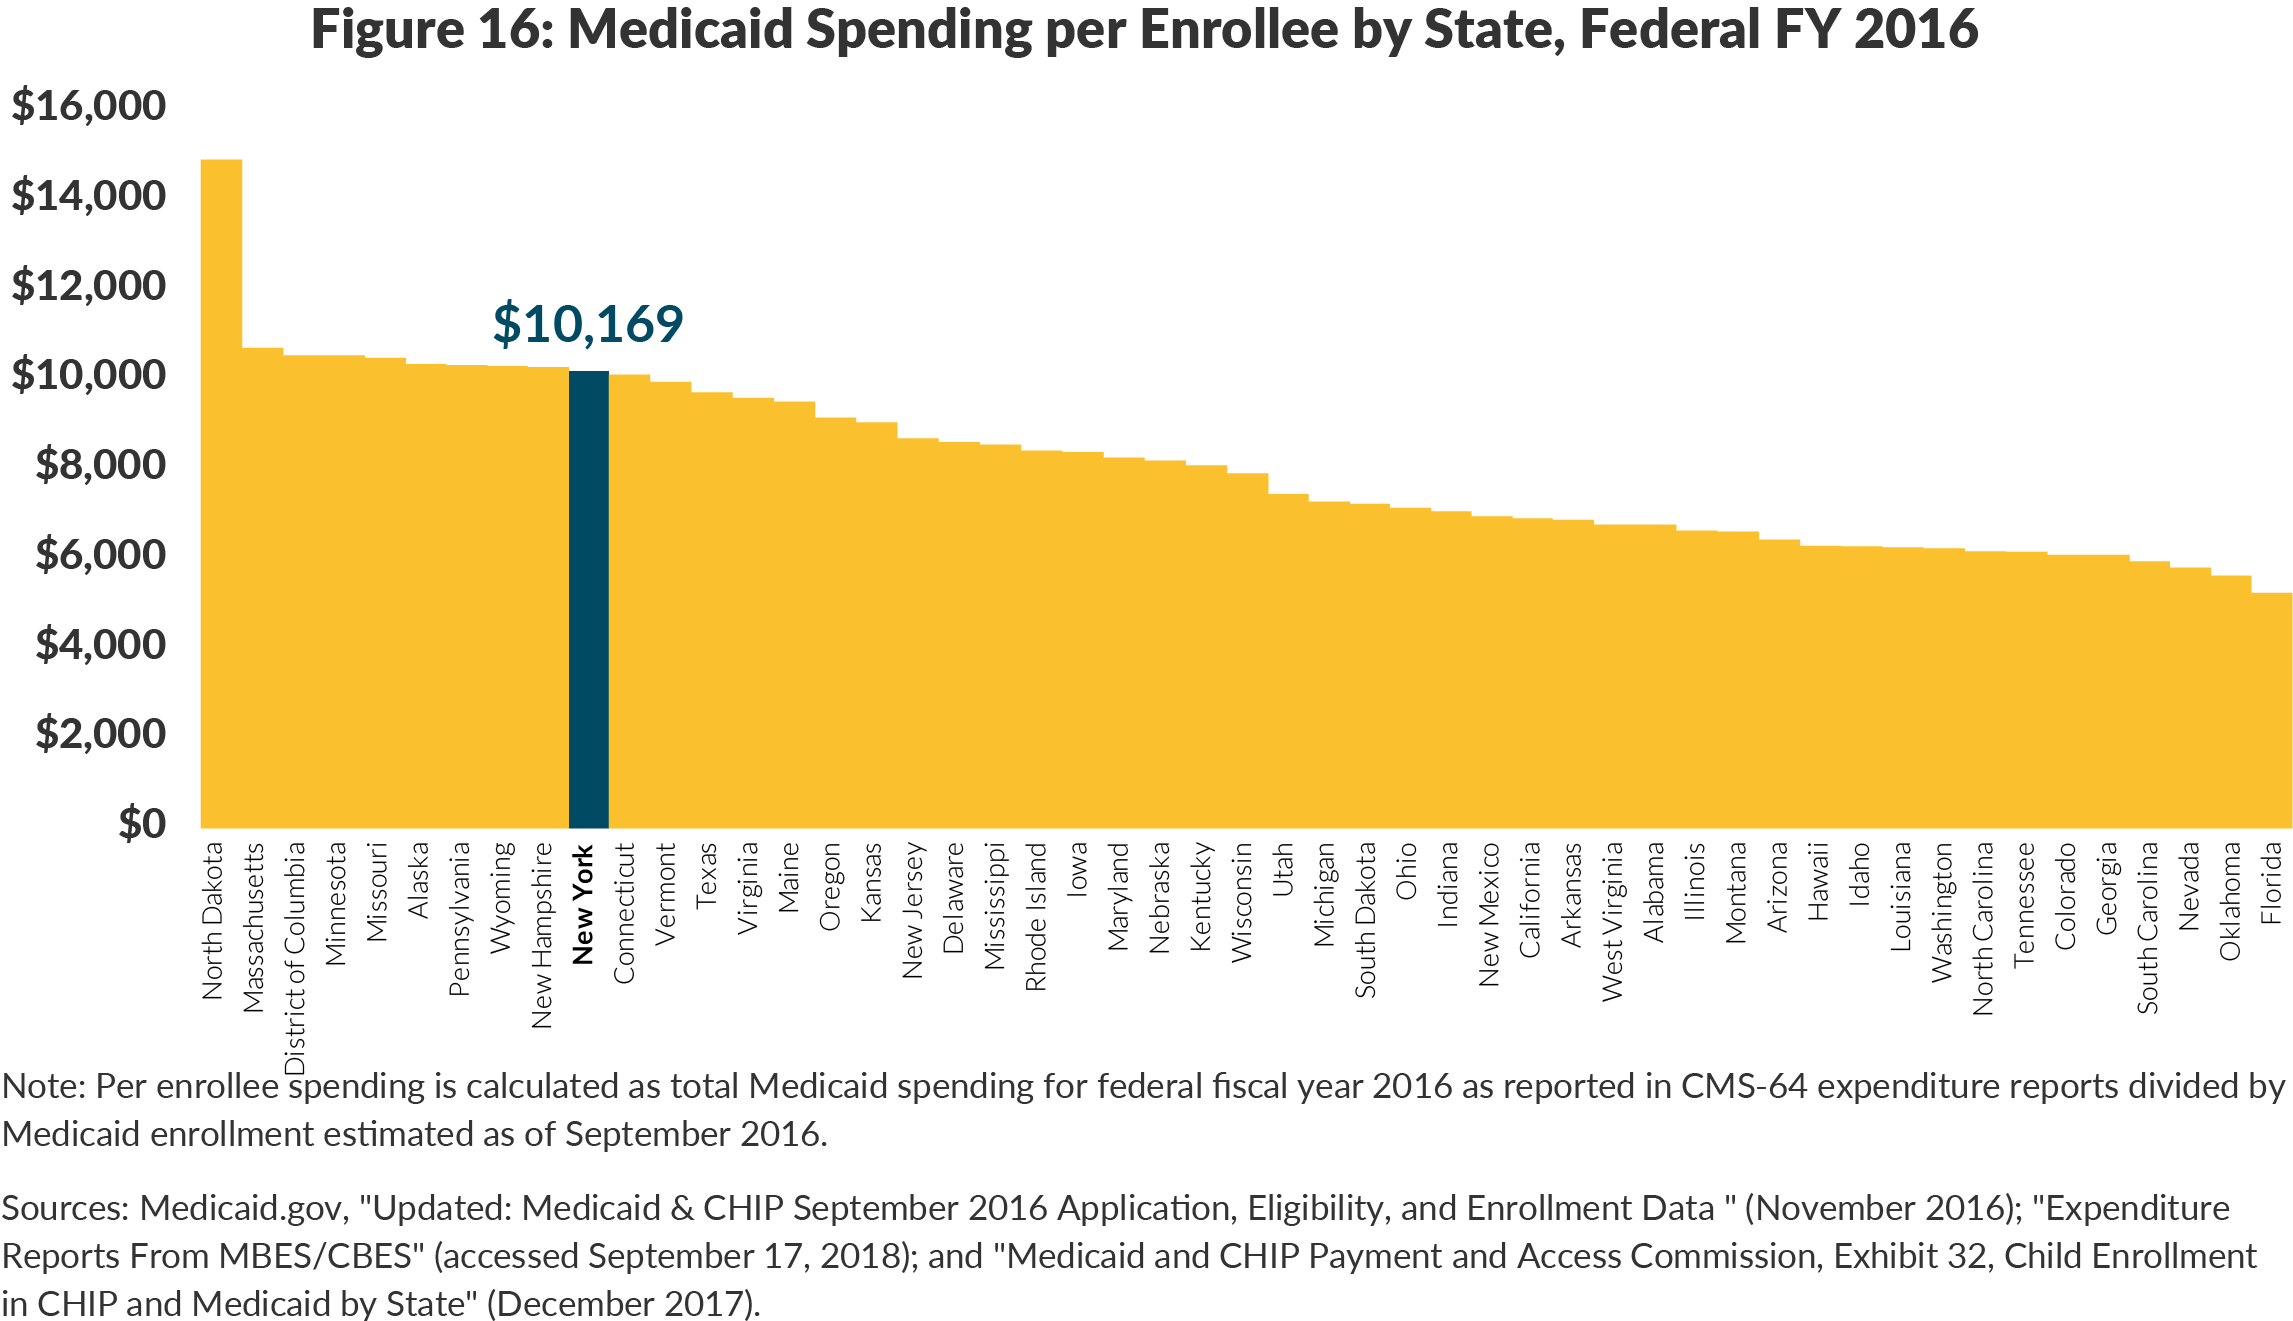 Figure 16: Medicaid Spending per Enrollee by State, Federal FY 2016